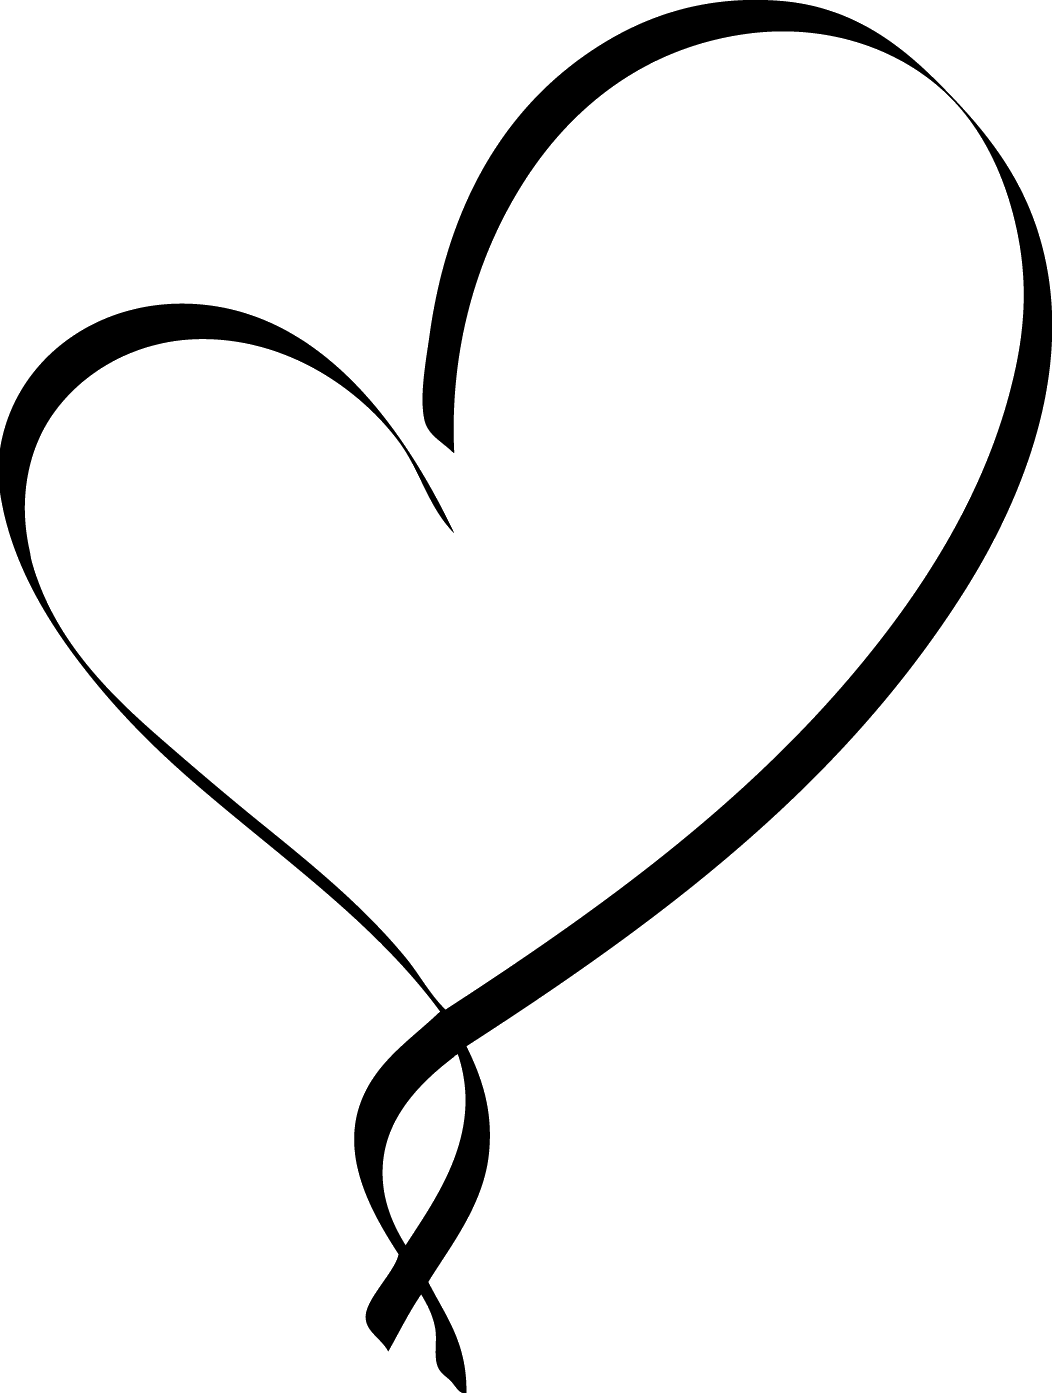 Book and heart clipart image download Heart Symbol Clip art - Script Clipart 1052*1393 transprent Png Free ... image download